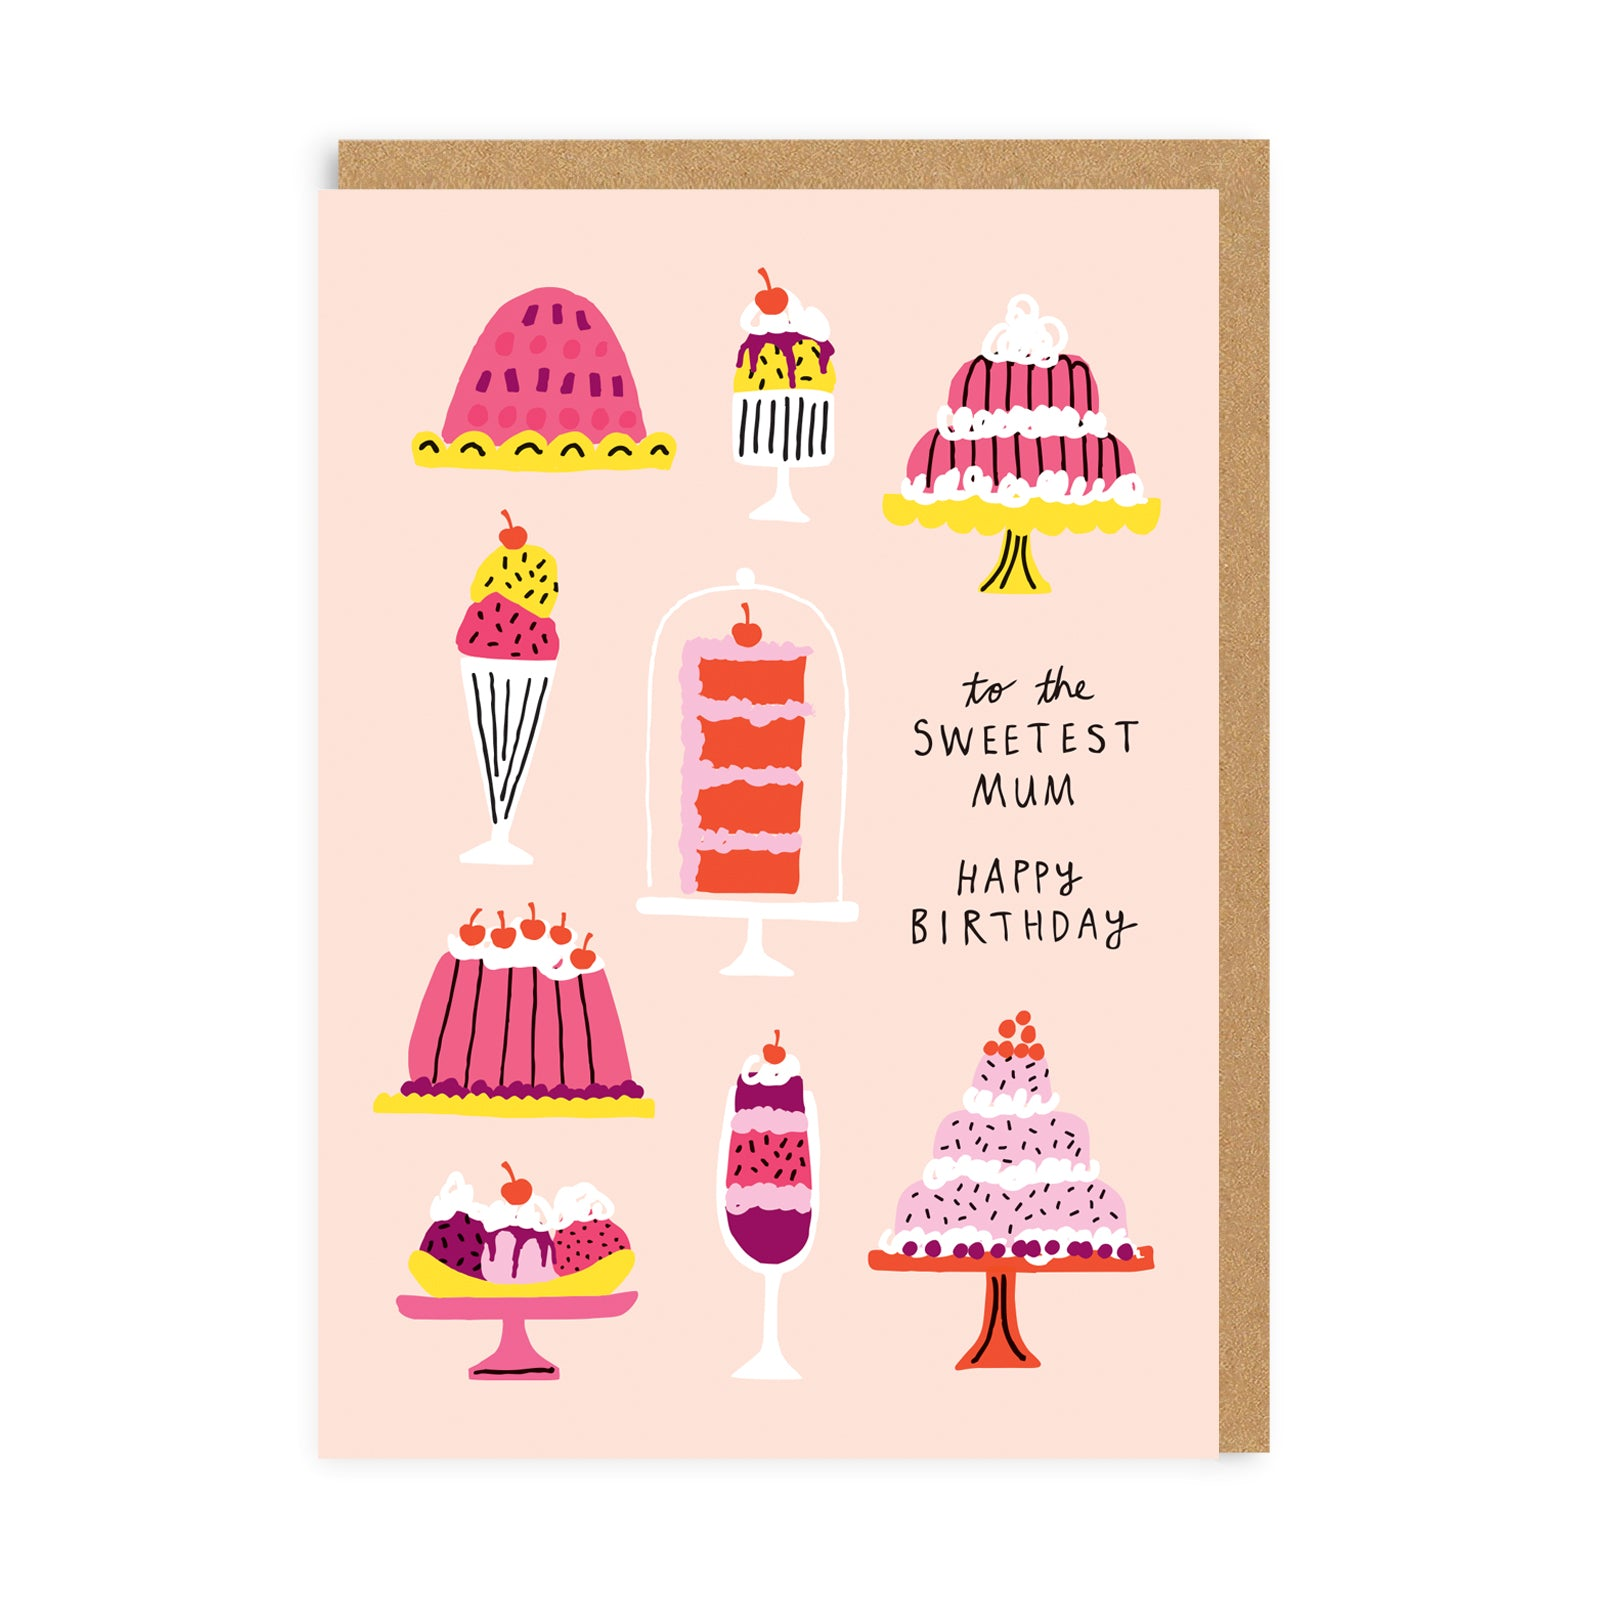 Sweetest Mum Birthday Greeting Card